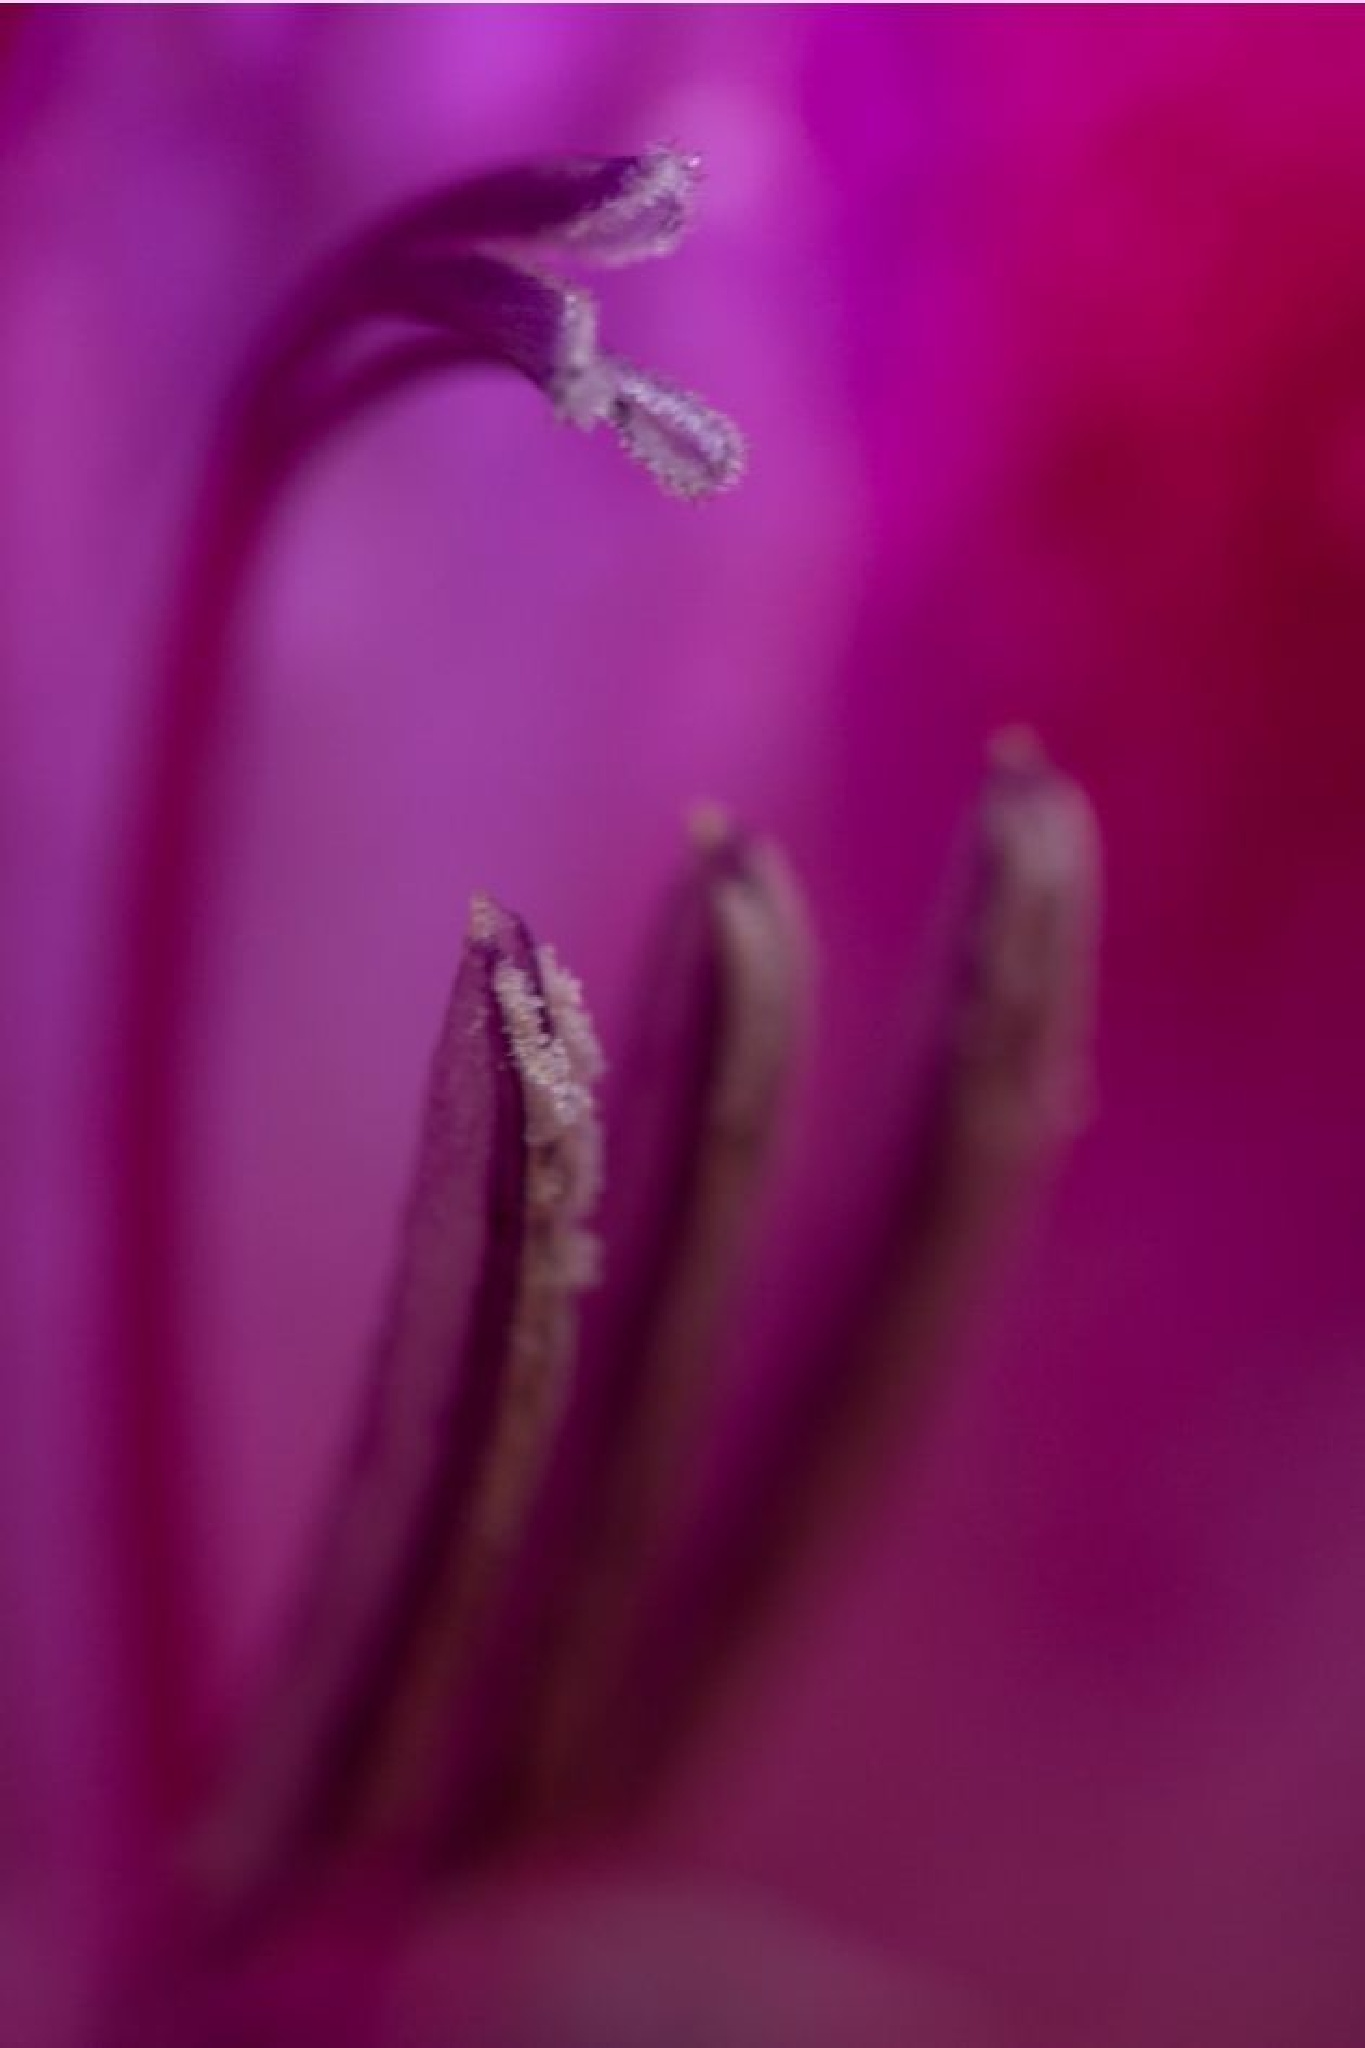 Macro by abeille77